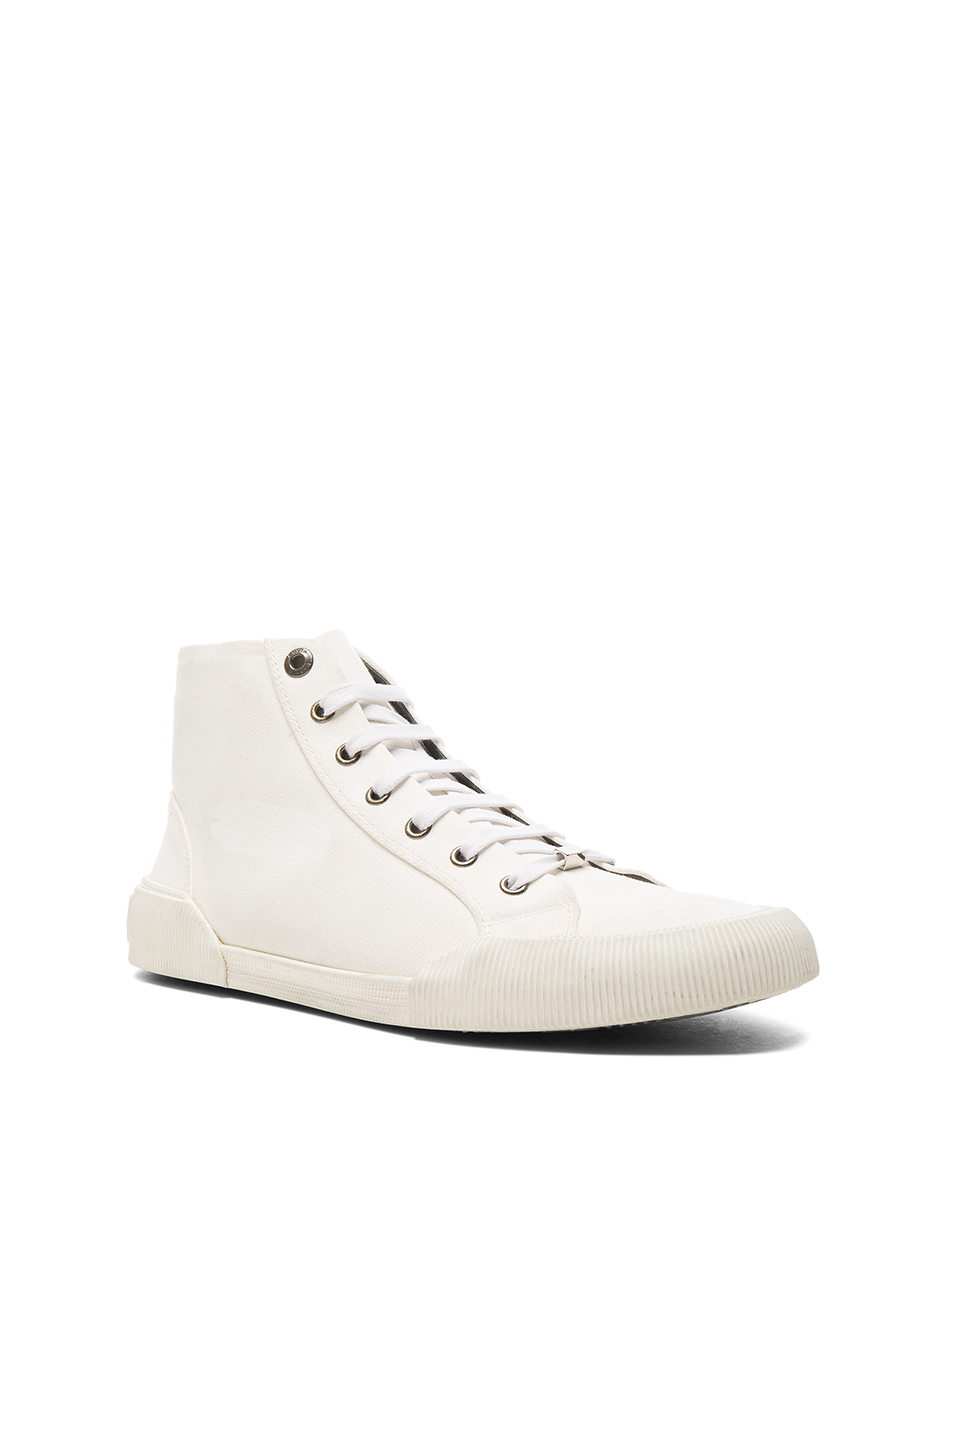 Lanvin Canvas Destroy Effect Mid-Top Sneakers in White